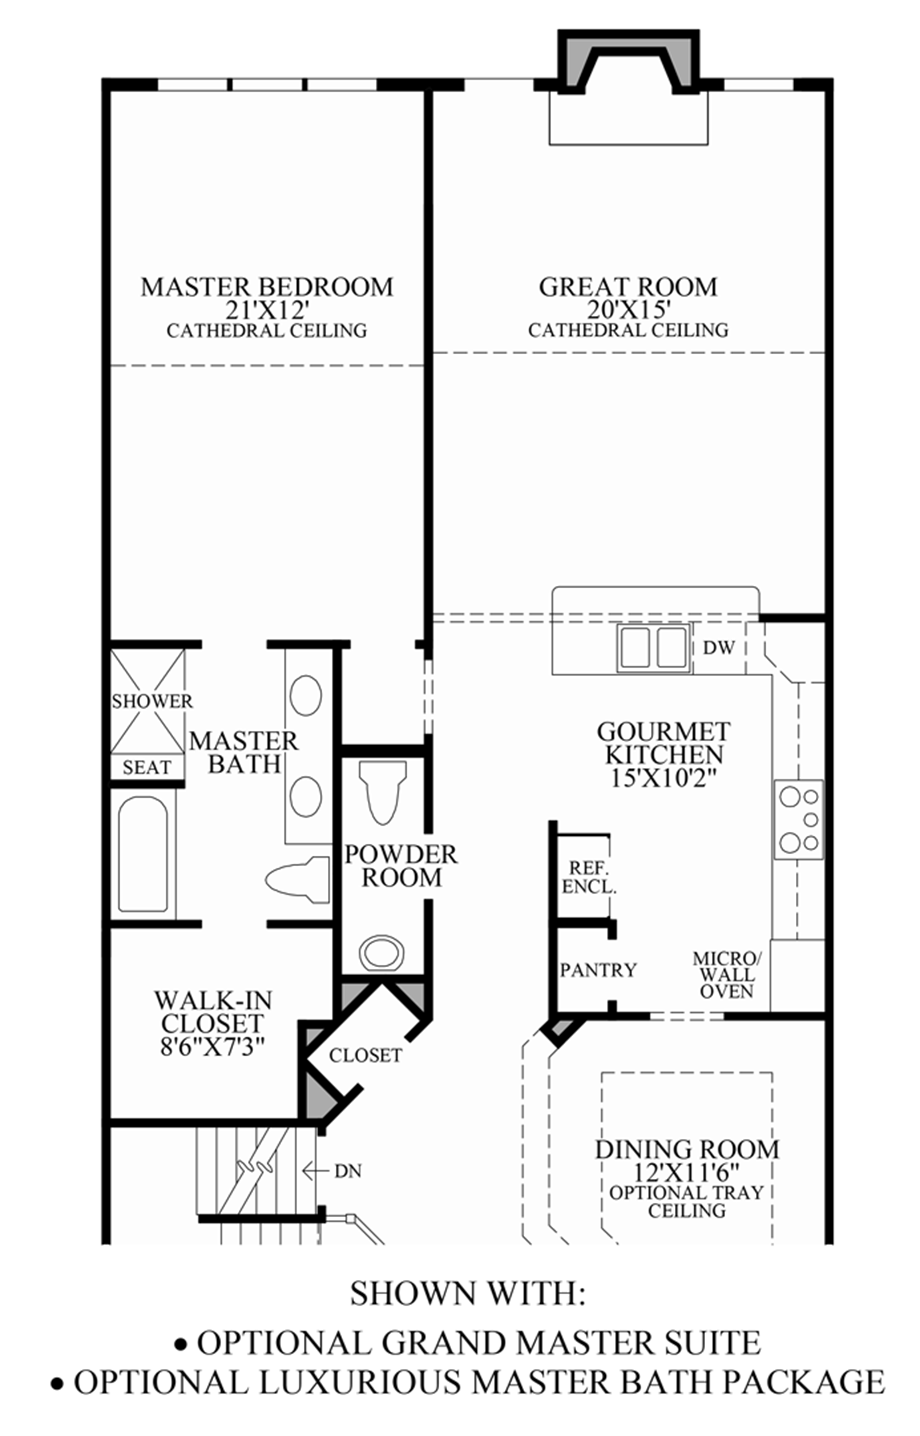 Optional Grand Master Suite/Luxurious Master Bath Package Floor Plan